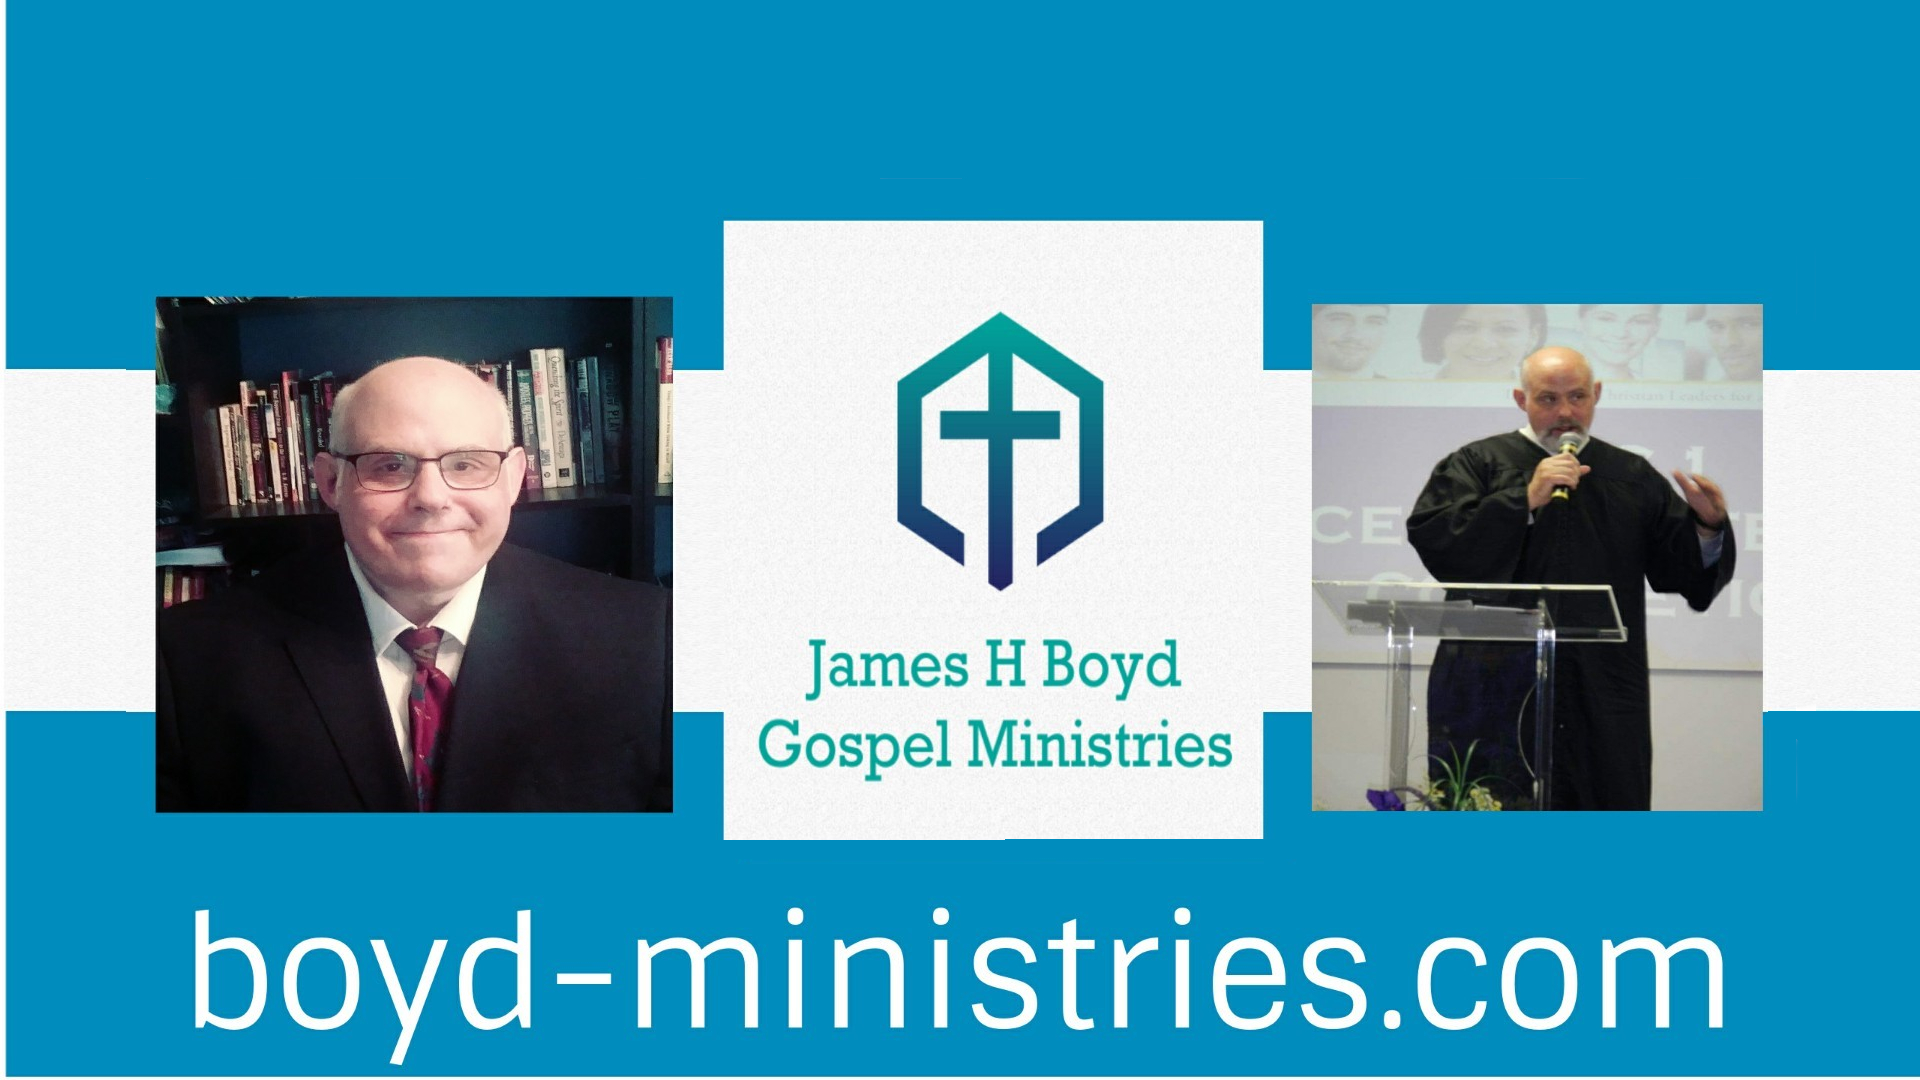 Welcome to the Official Home of James H Boyd Gospel Ministries